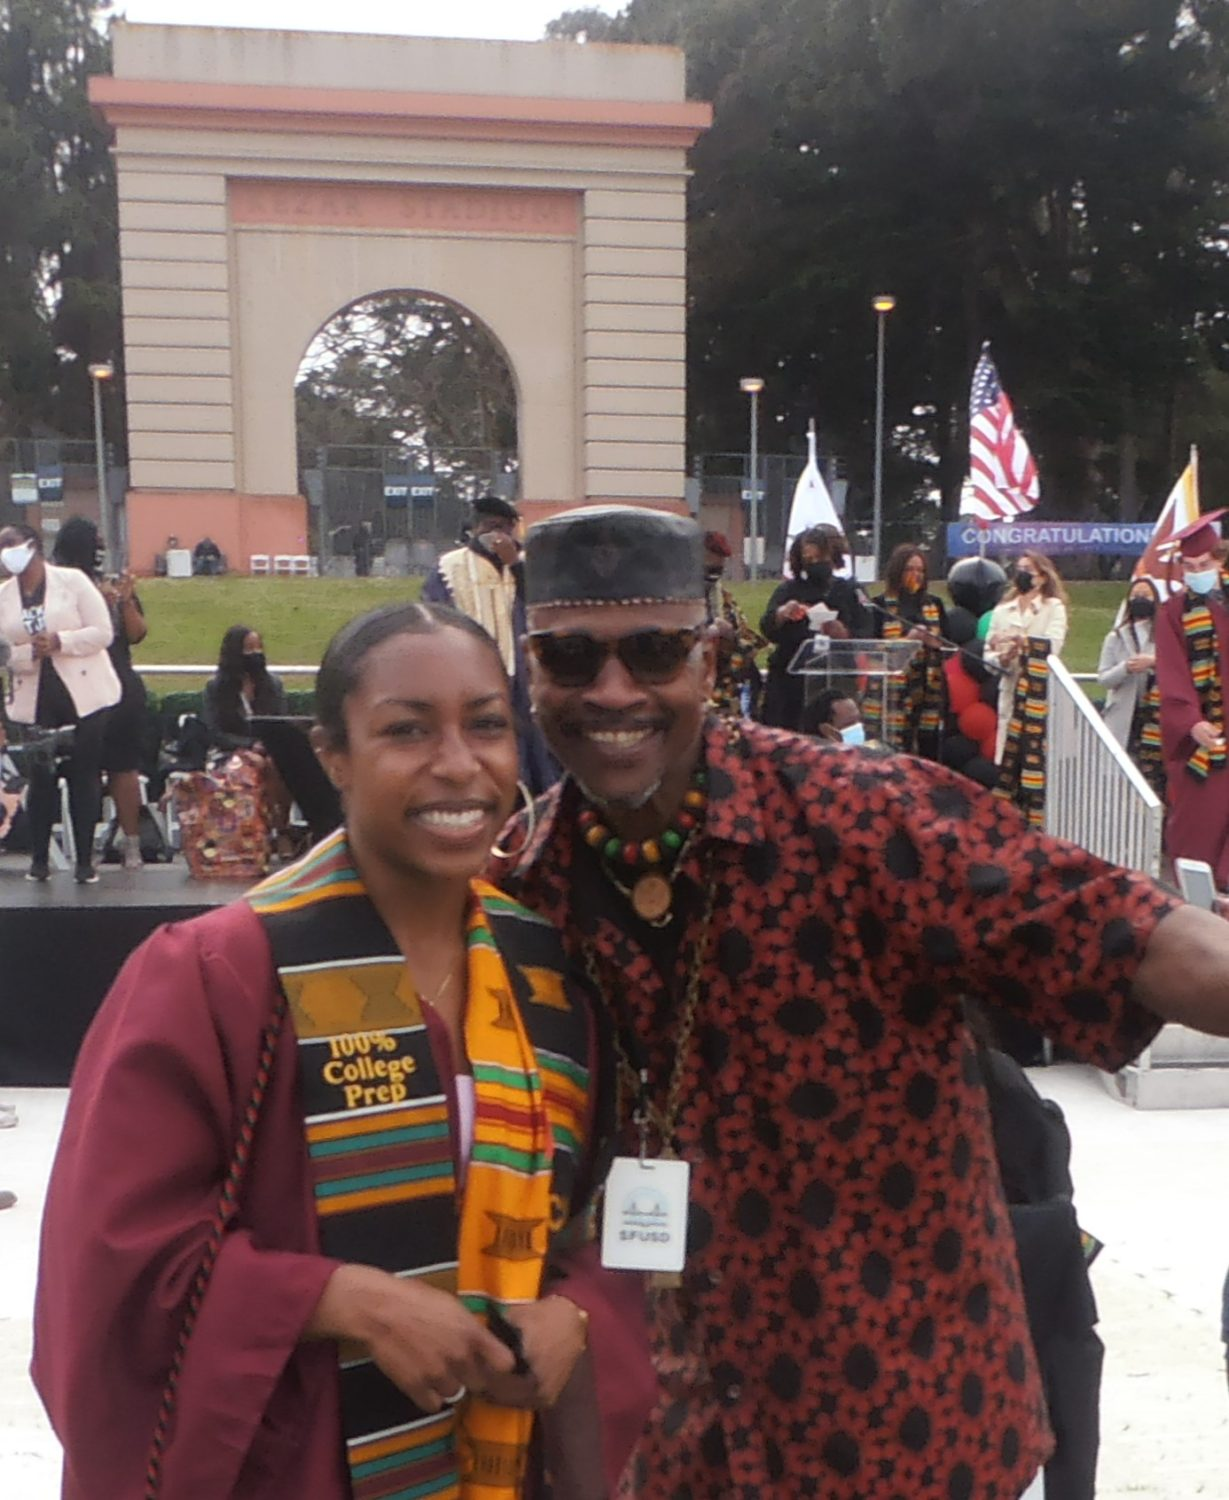 Teresa-Hinds-of-College-Prep-and-Clint-Sockwell-at-Black-Graduation-by-Jahahara-060421, The Juneteenth Holiday and Kujichagulia, or self-determination, Culture Currents